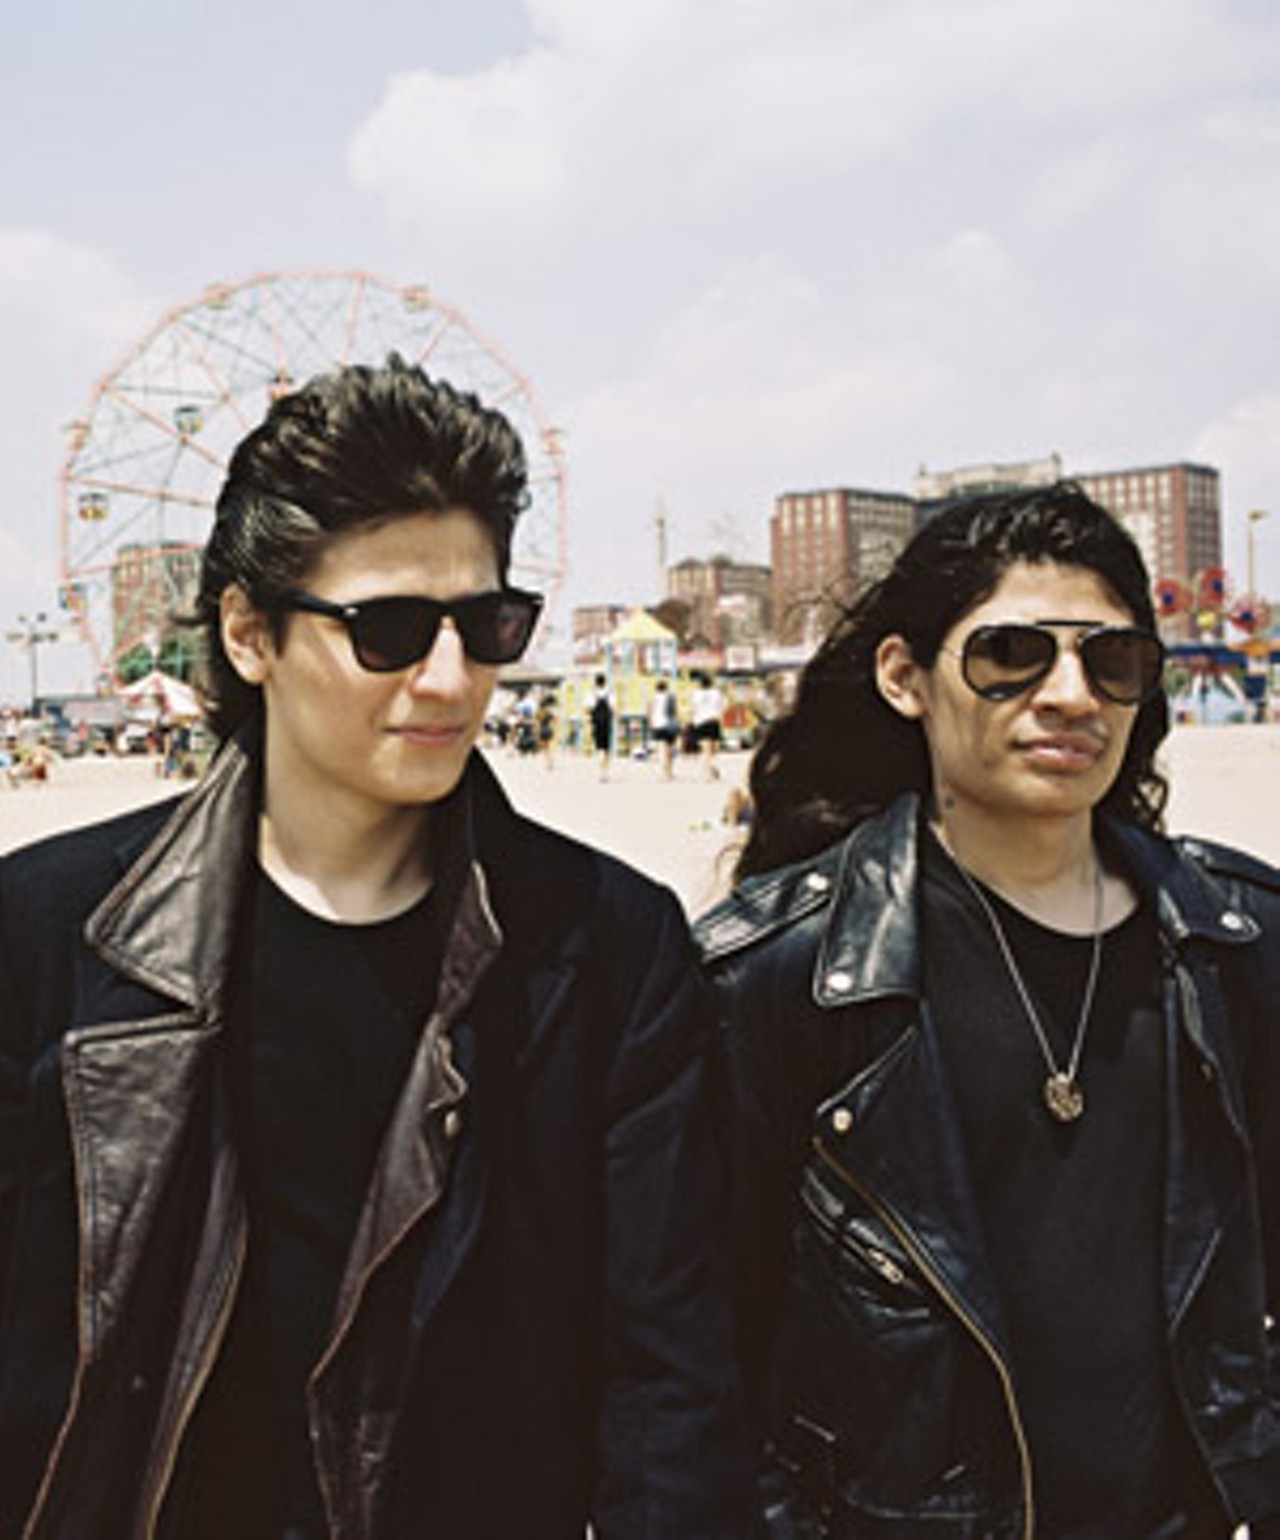 Raised On Film: Crystal Moselle's The Wolfpack Opens The